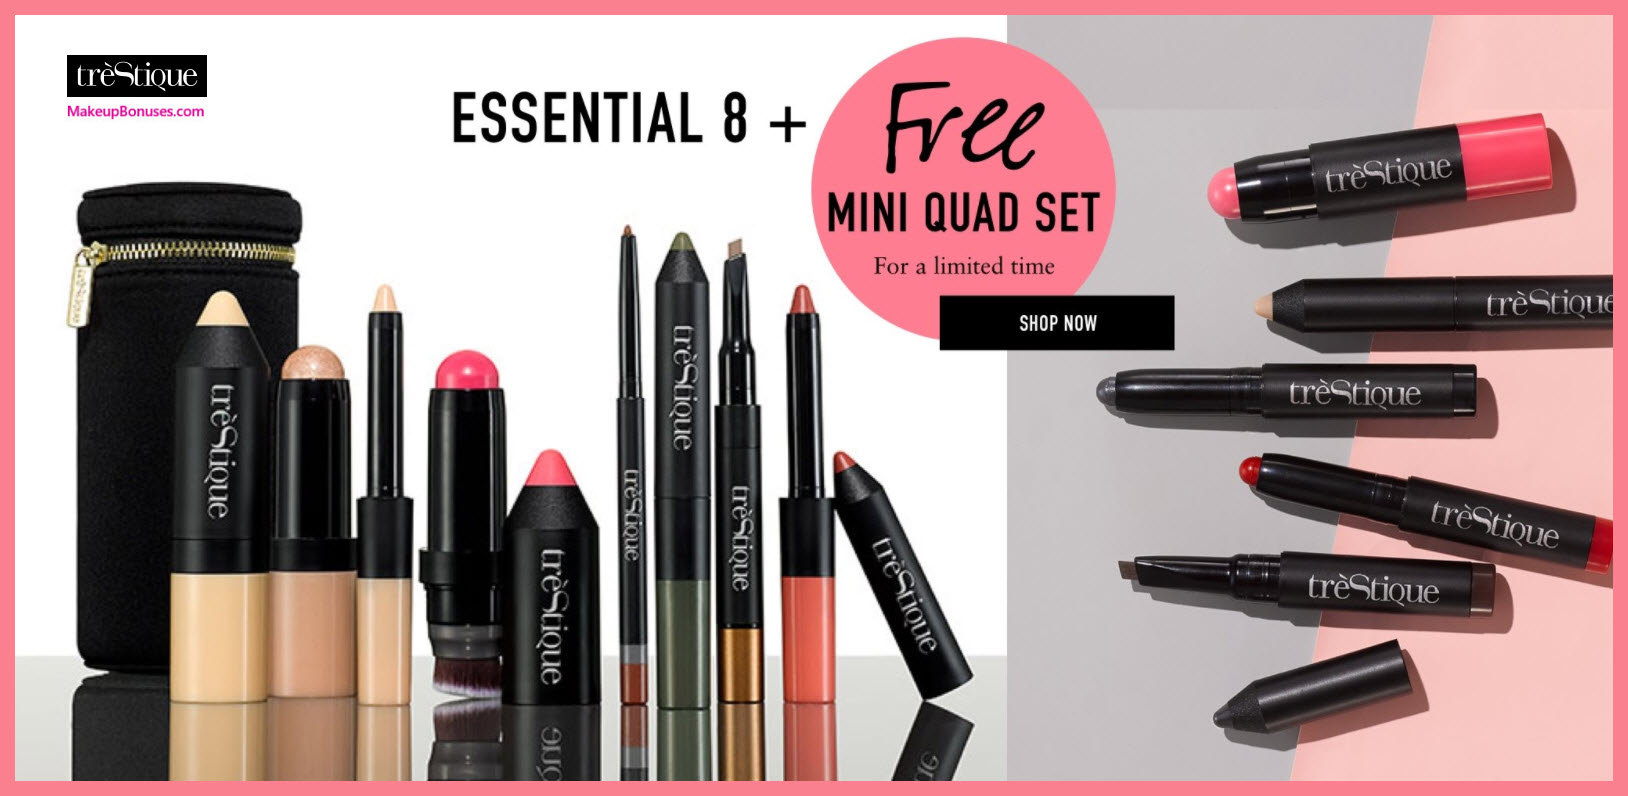 Receive a free 4-pc gift with Essential 8 purchase